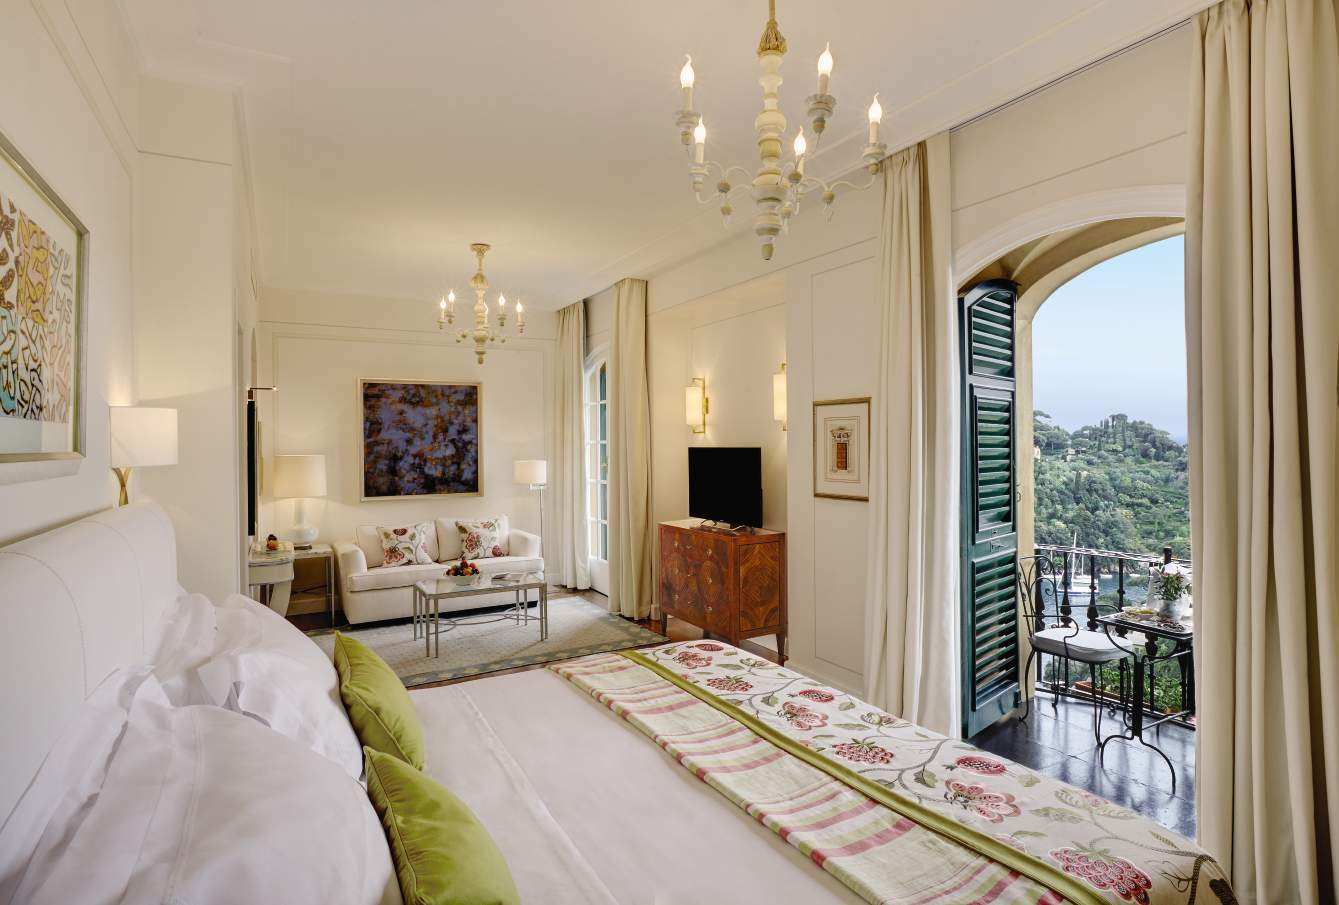 Belmond-Hotel-Splendido-junior-suite